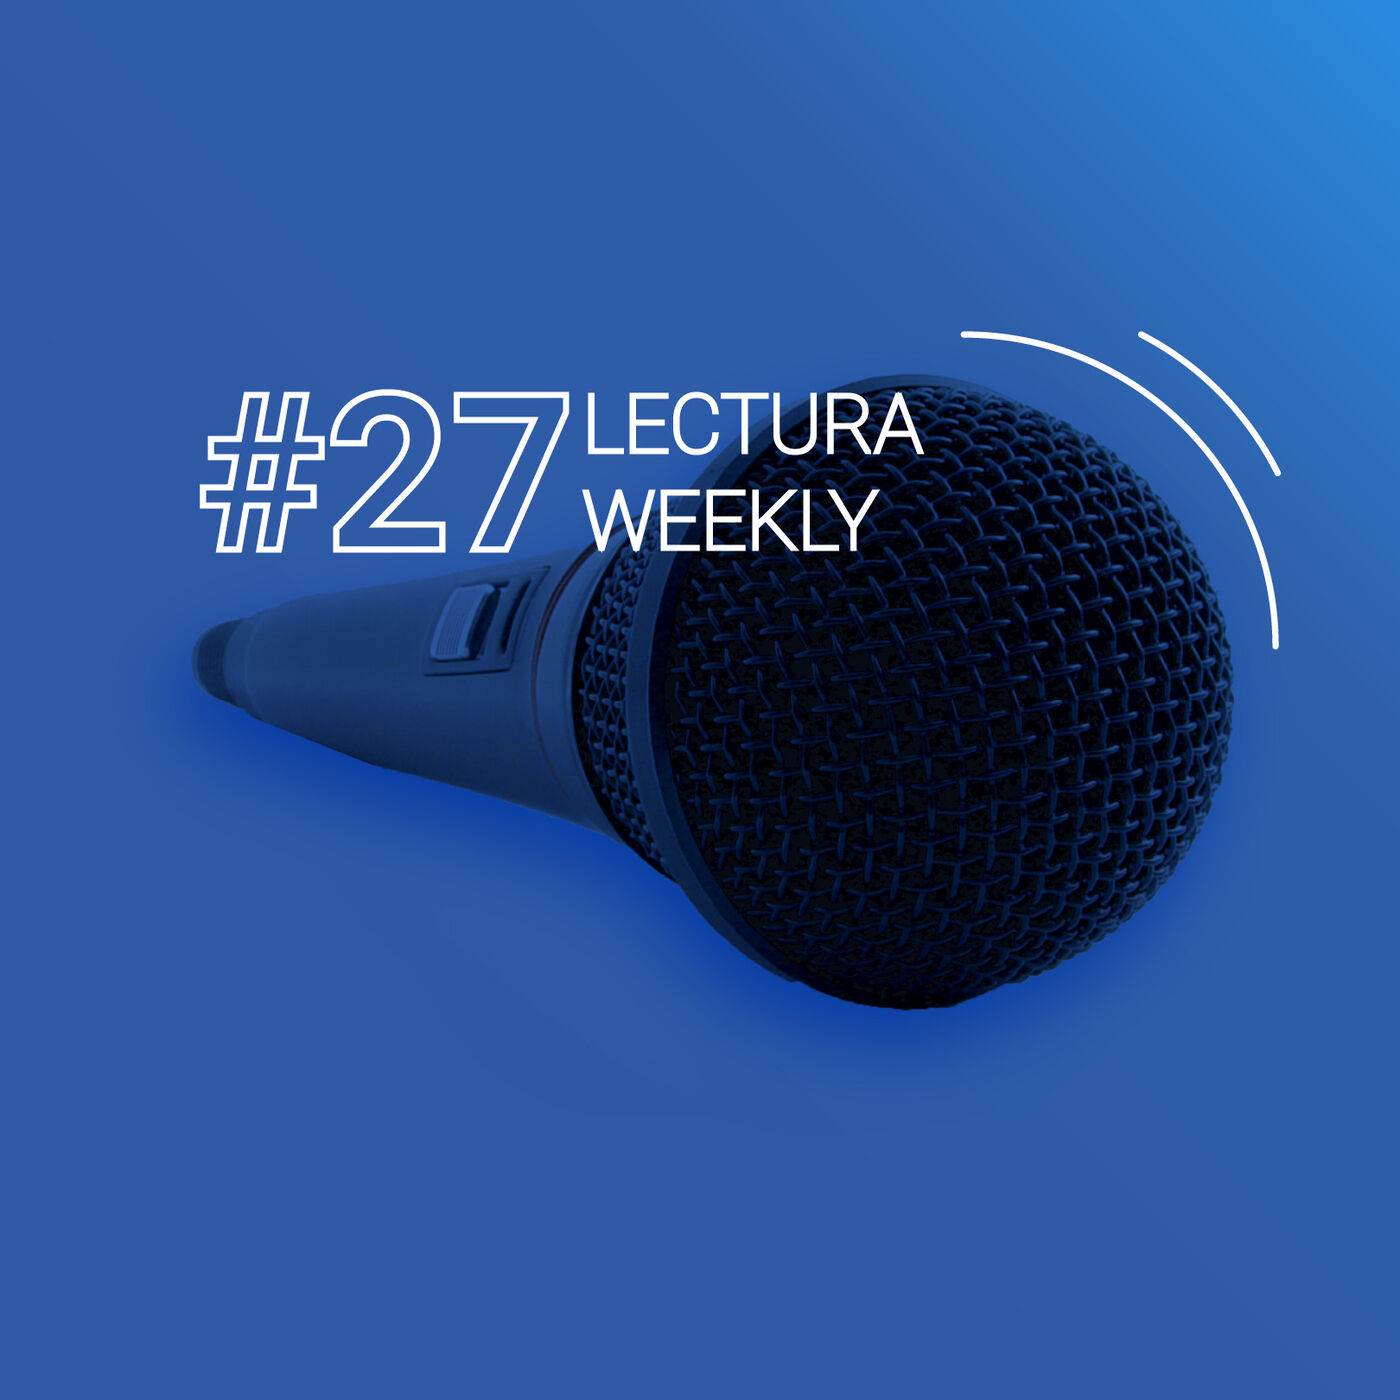 Lectura Weekly Podcasts: Week 27